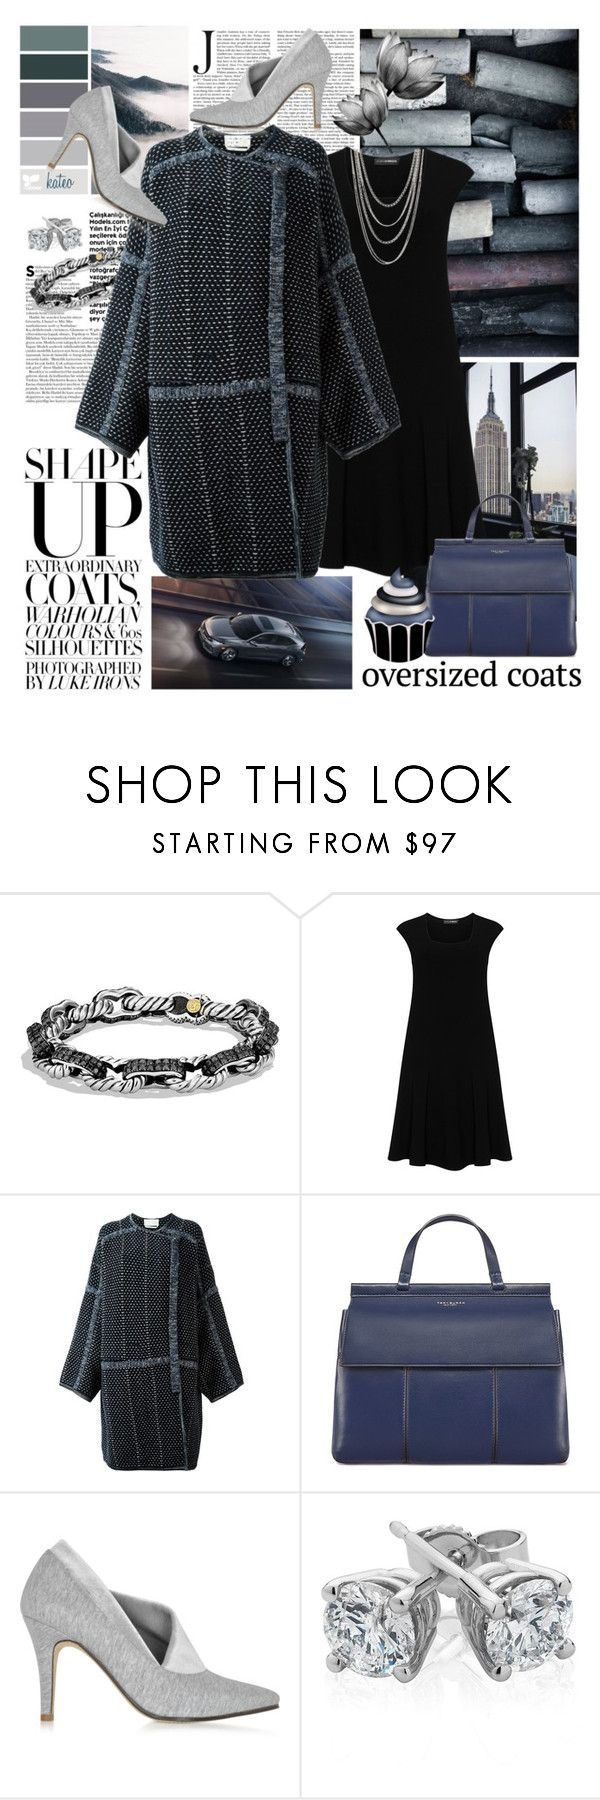 """""""Midnight Blues"""" by kateo ❤ liked on Polyvore featuring David Yurman, Doris Streich, Chloé, Tory Burch, Zoe Lee, Reeds Jewelers, FOSSIL, oversizedcoats and 6412"""